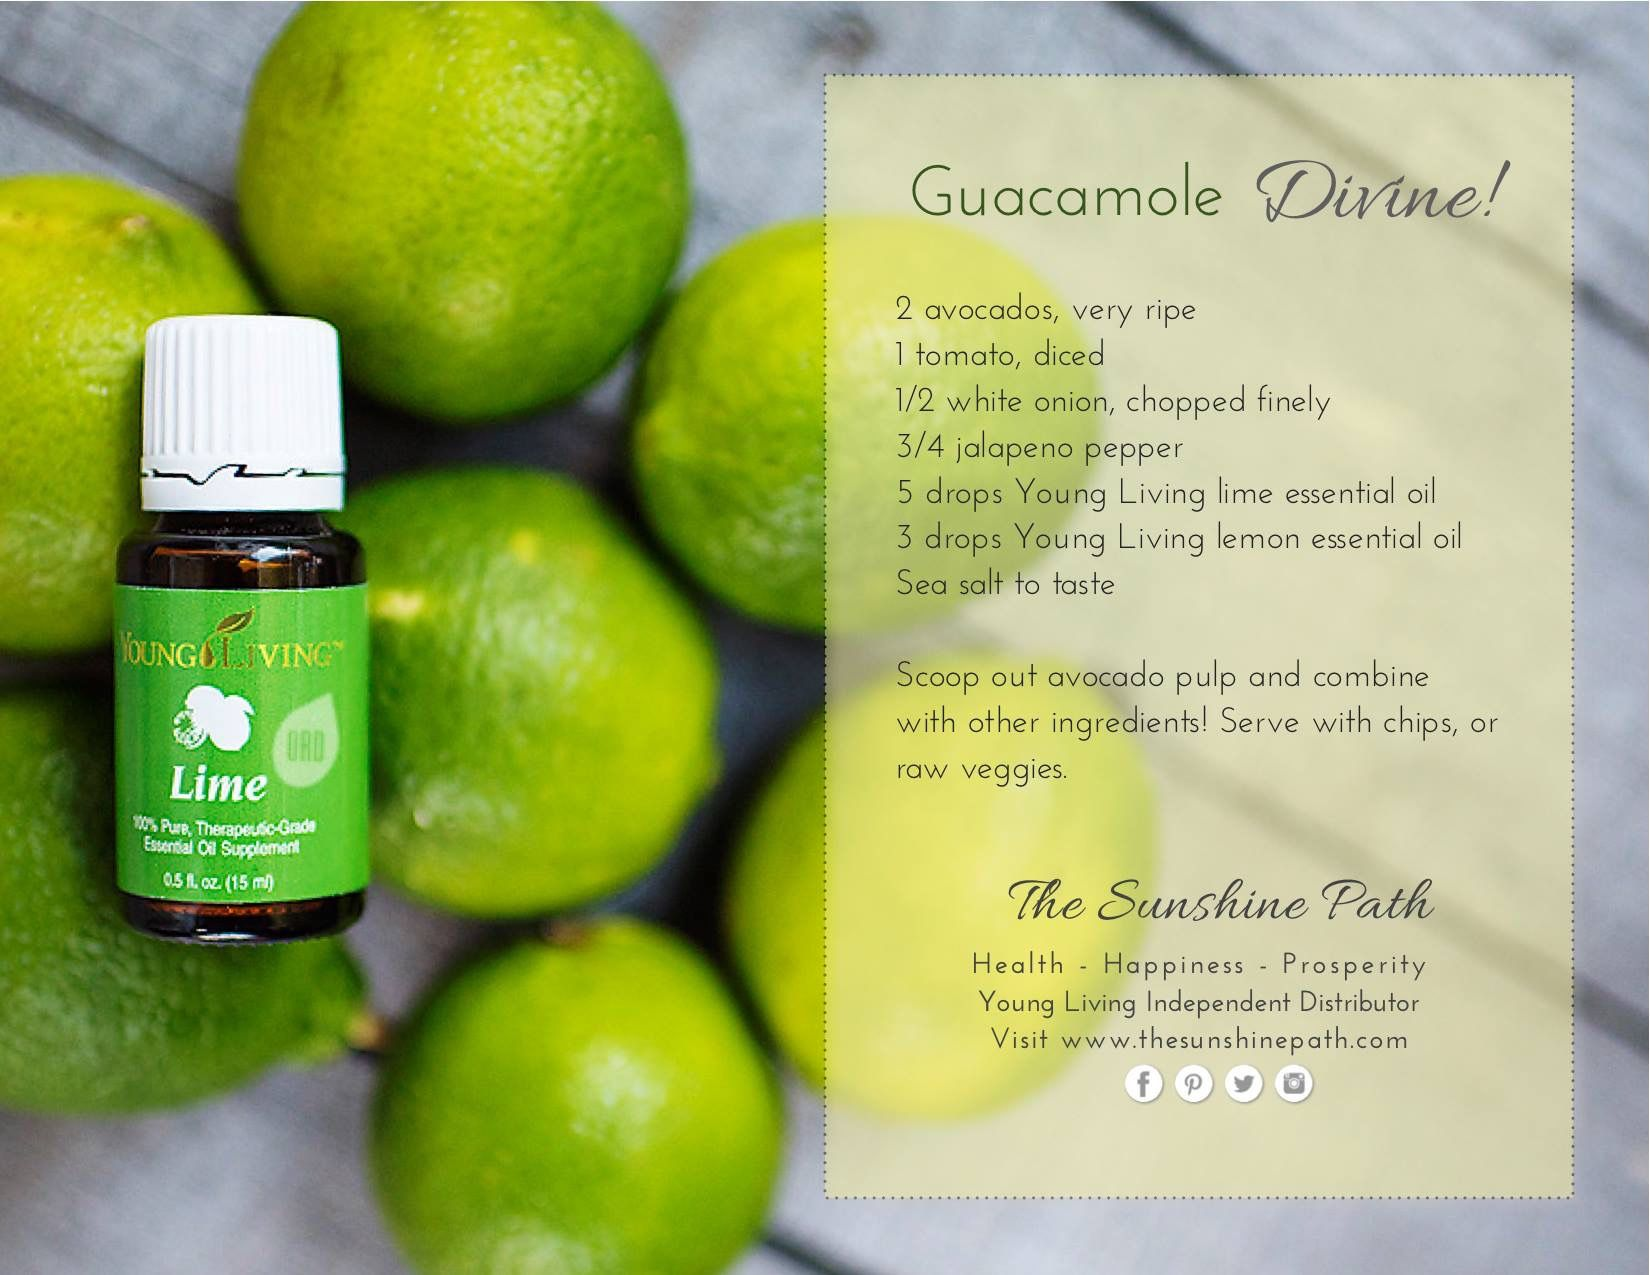 Can You Substitute Lime For Lemon In Guacamole Guacamole Recipe Food Recipes For Young Living Essential Oils Cooking With Essential Oils Yl Essential Oils Lime Essential Oil